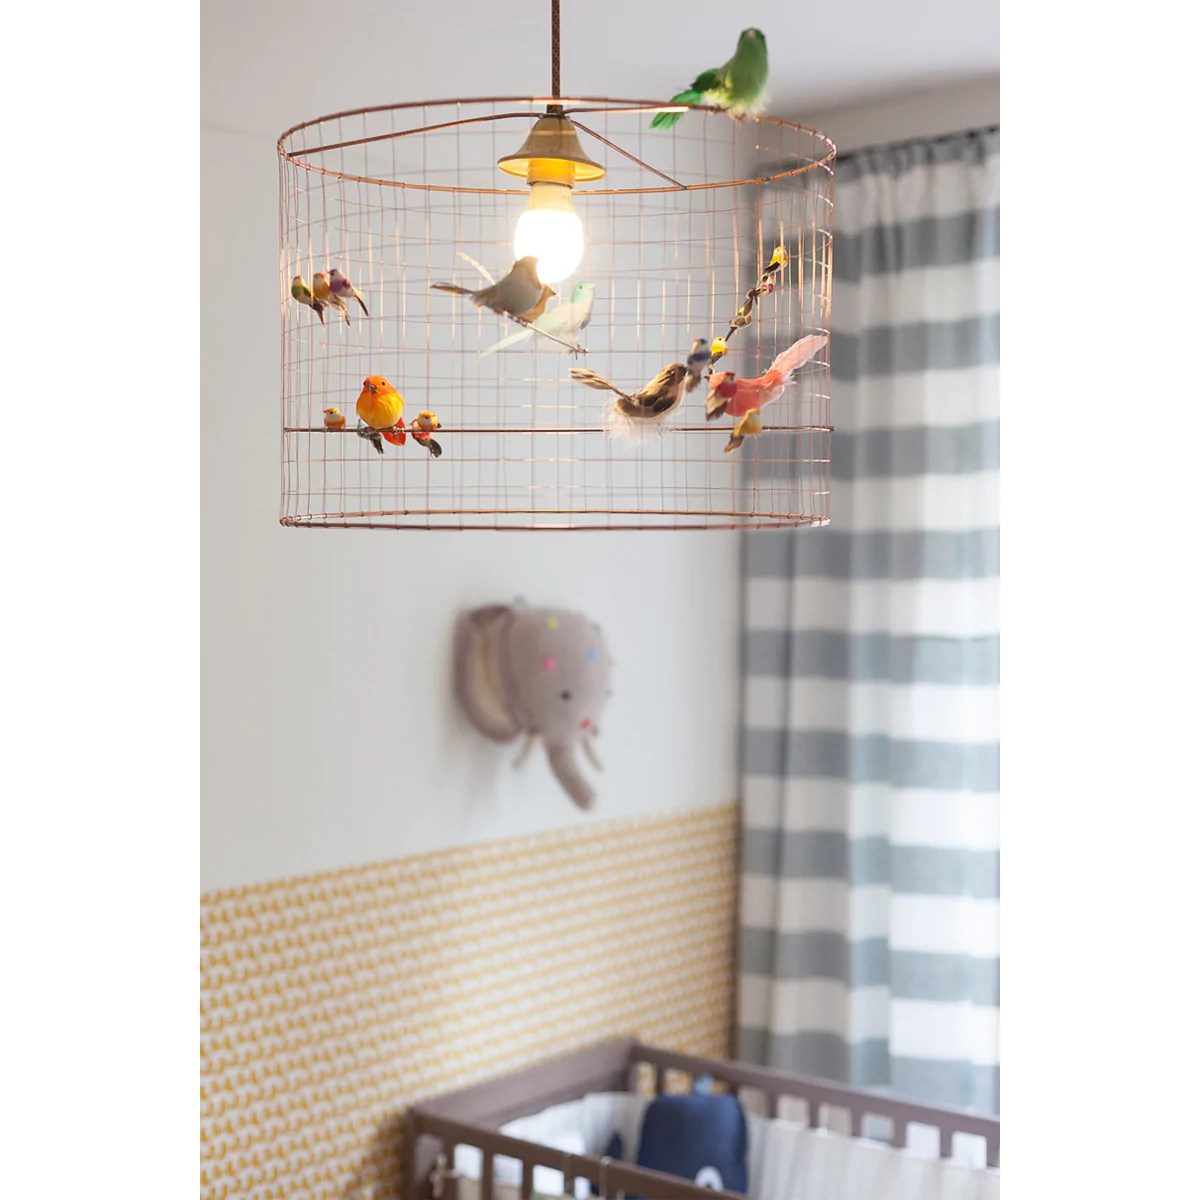 Suspension Voliere Challières Small Volière Bird Cage Suspension Lamp Petit Bazaar